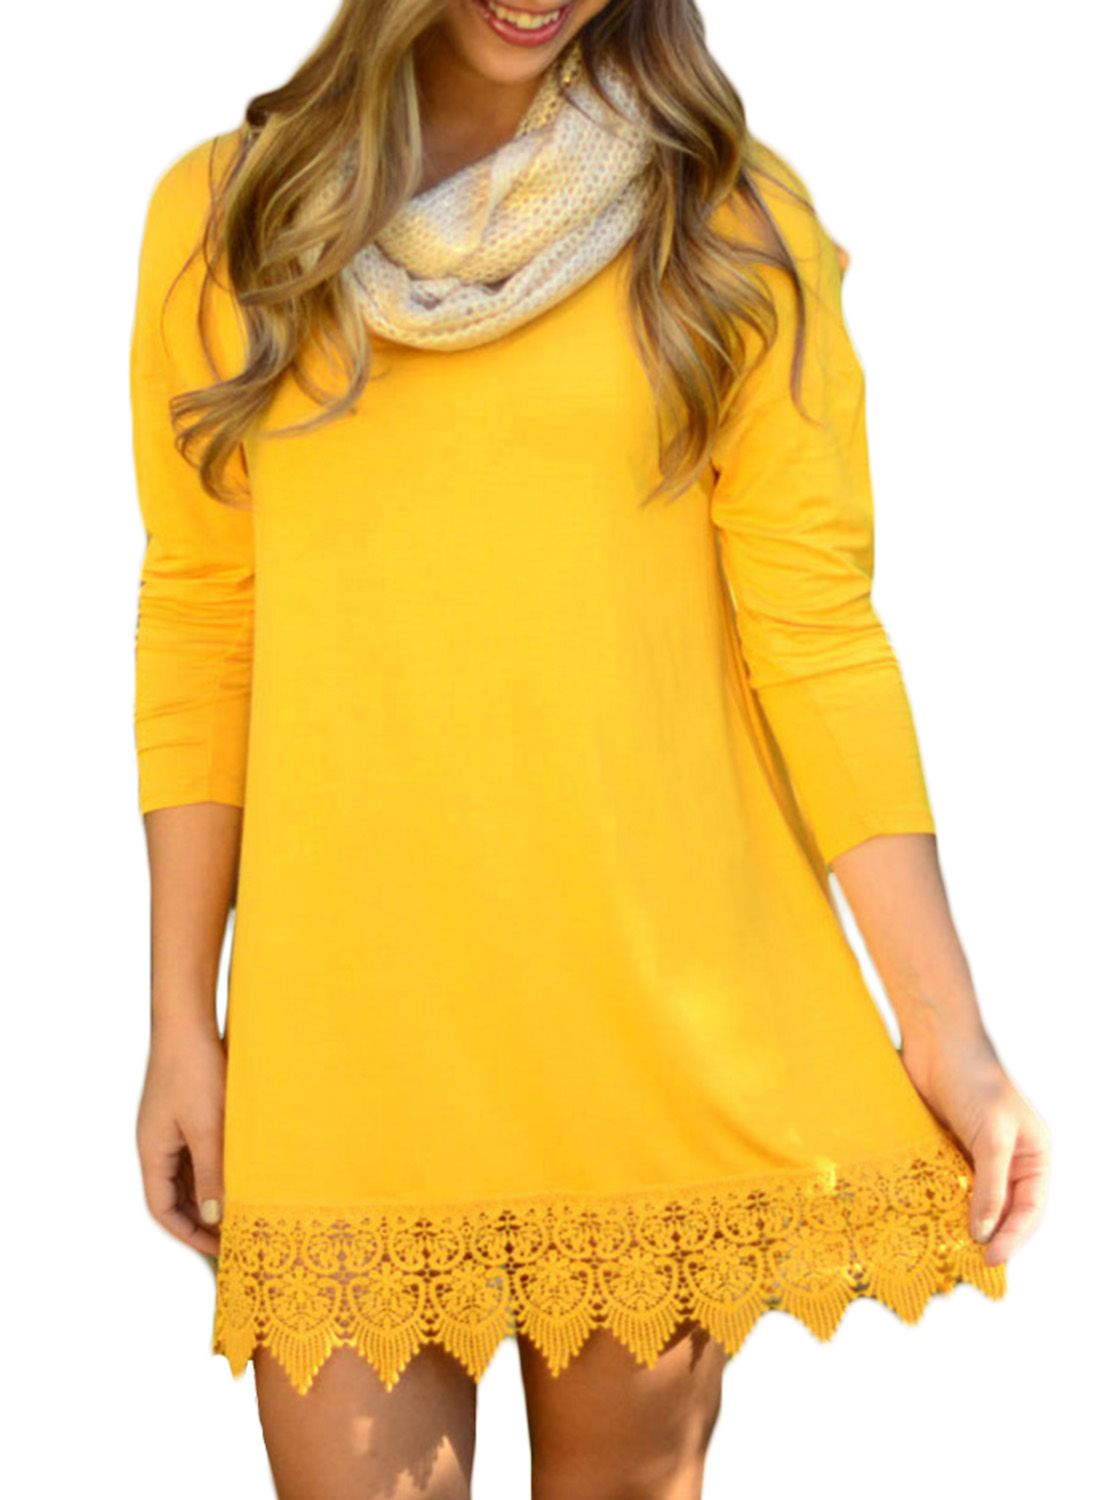 The dress made from a stretch knit with long sleeve crochet lace